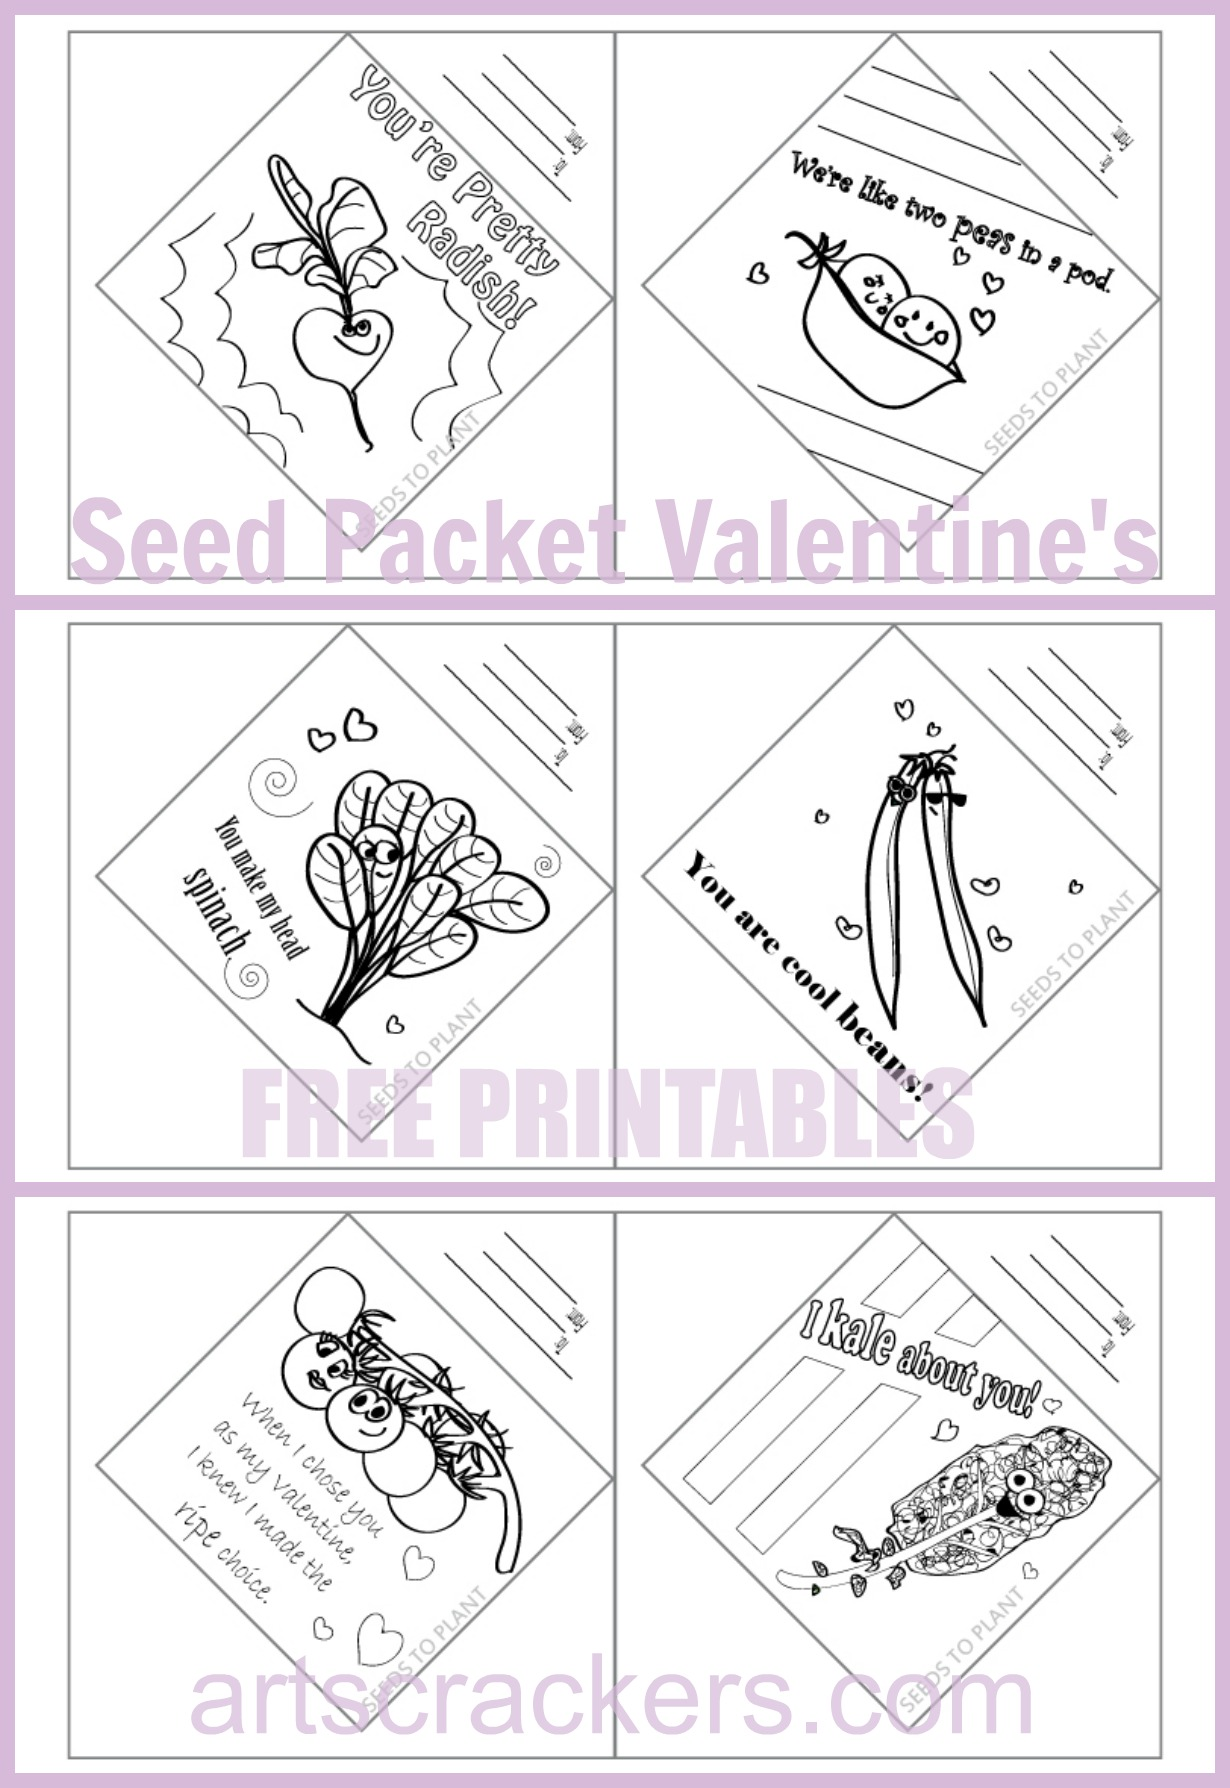 Free Printable Worksheets Packets : Printable seed packet valentines non candy